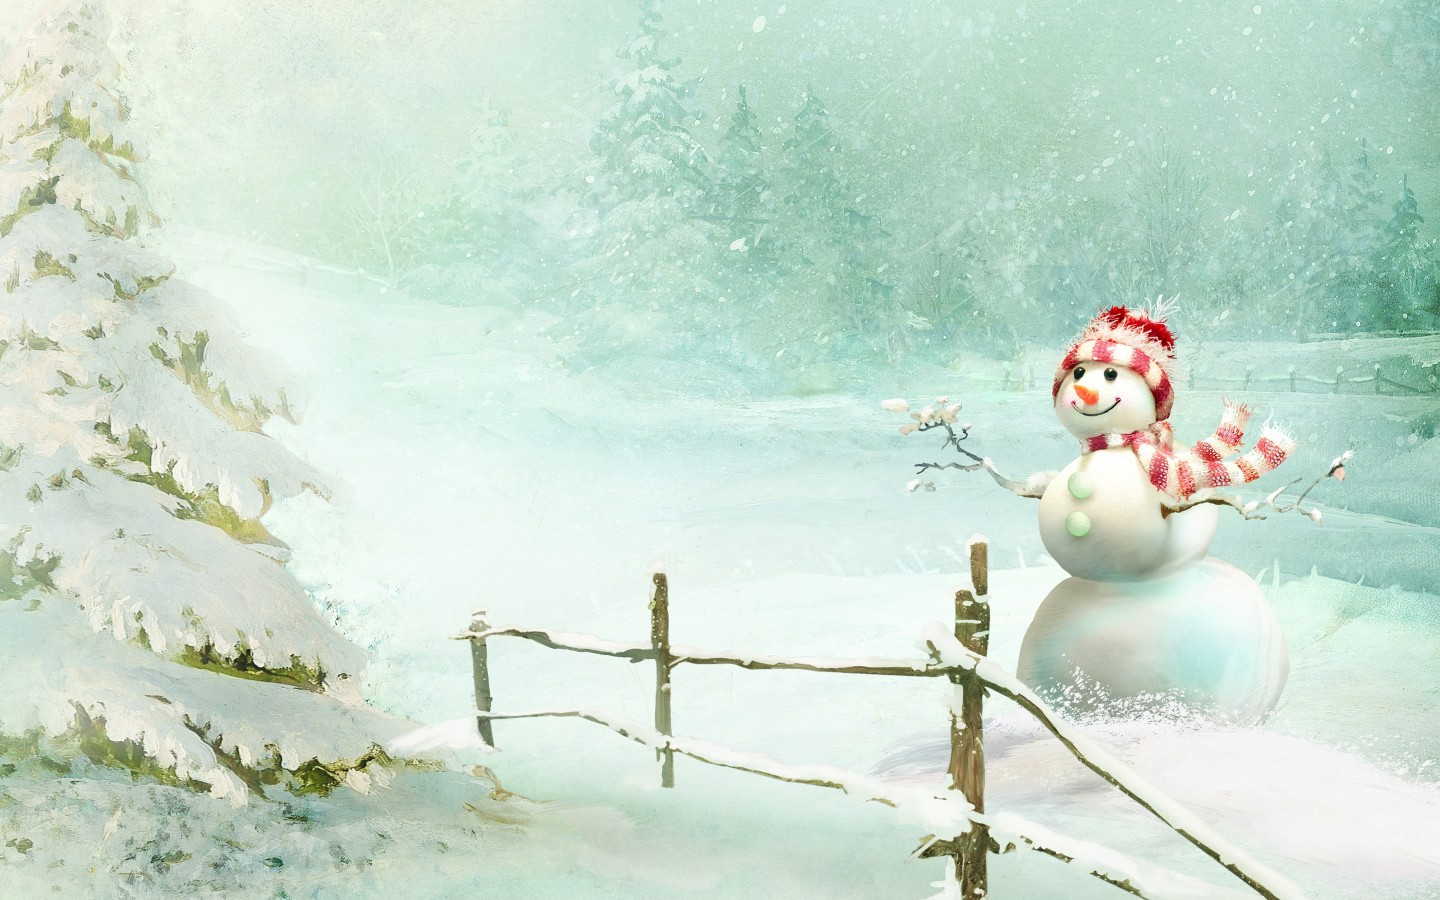 Christmas Snowman Wallpapers HD Wallpapers ID 16511